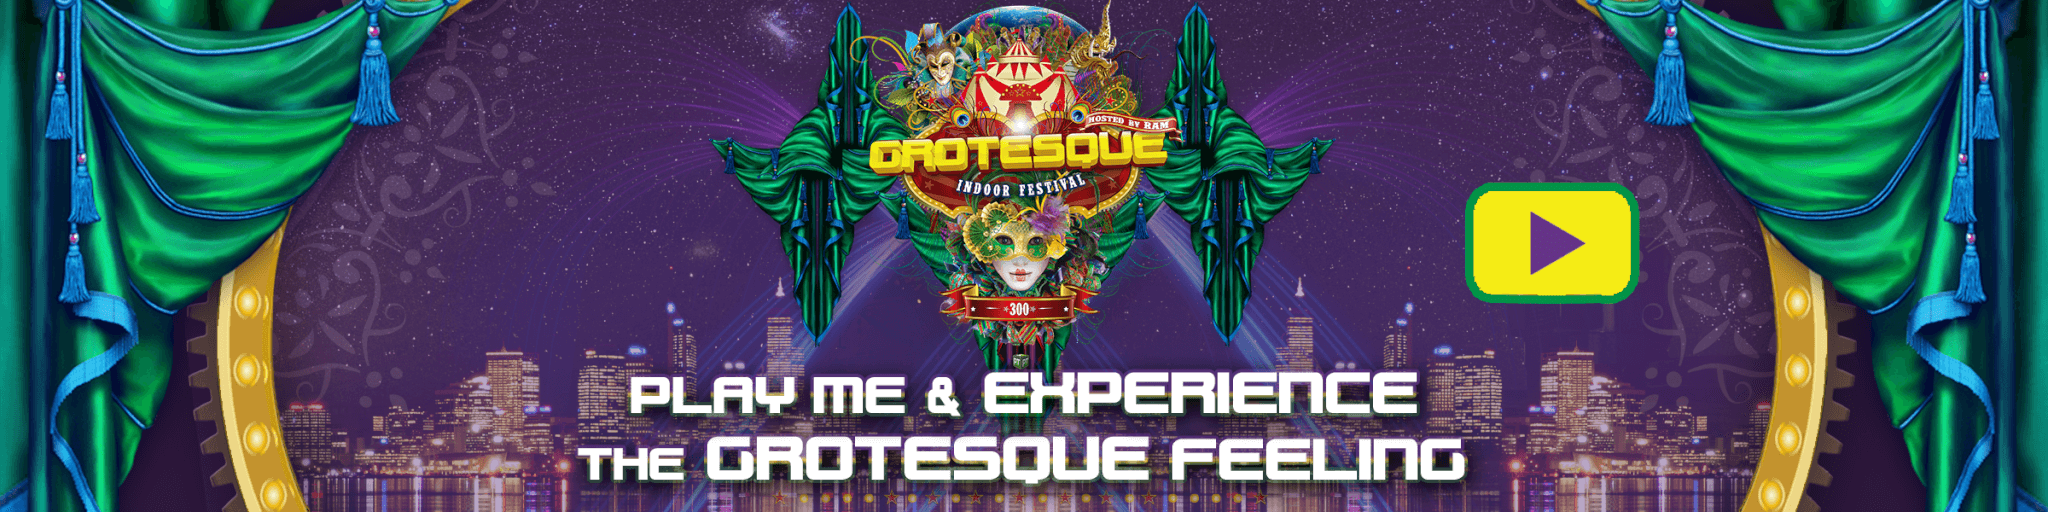 PT Events presents Grotesque Indoor Festival 300 banner movie